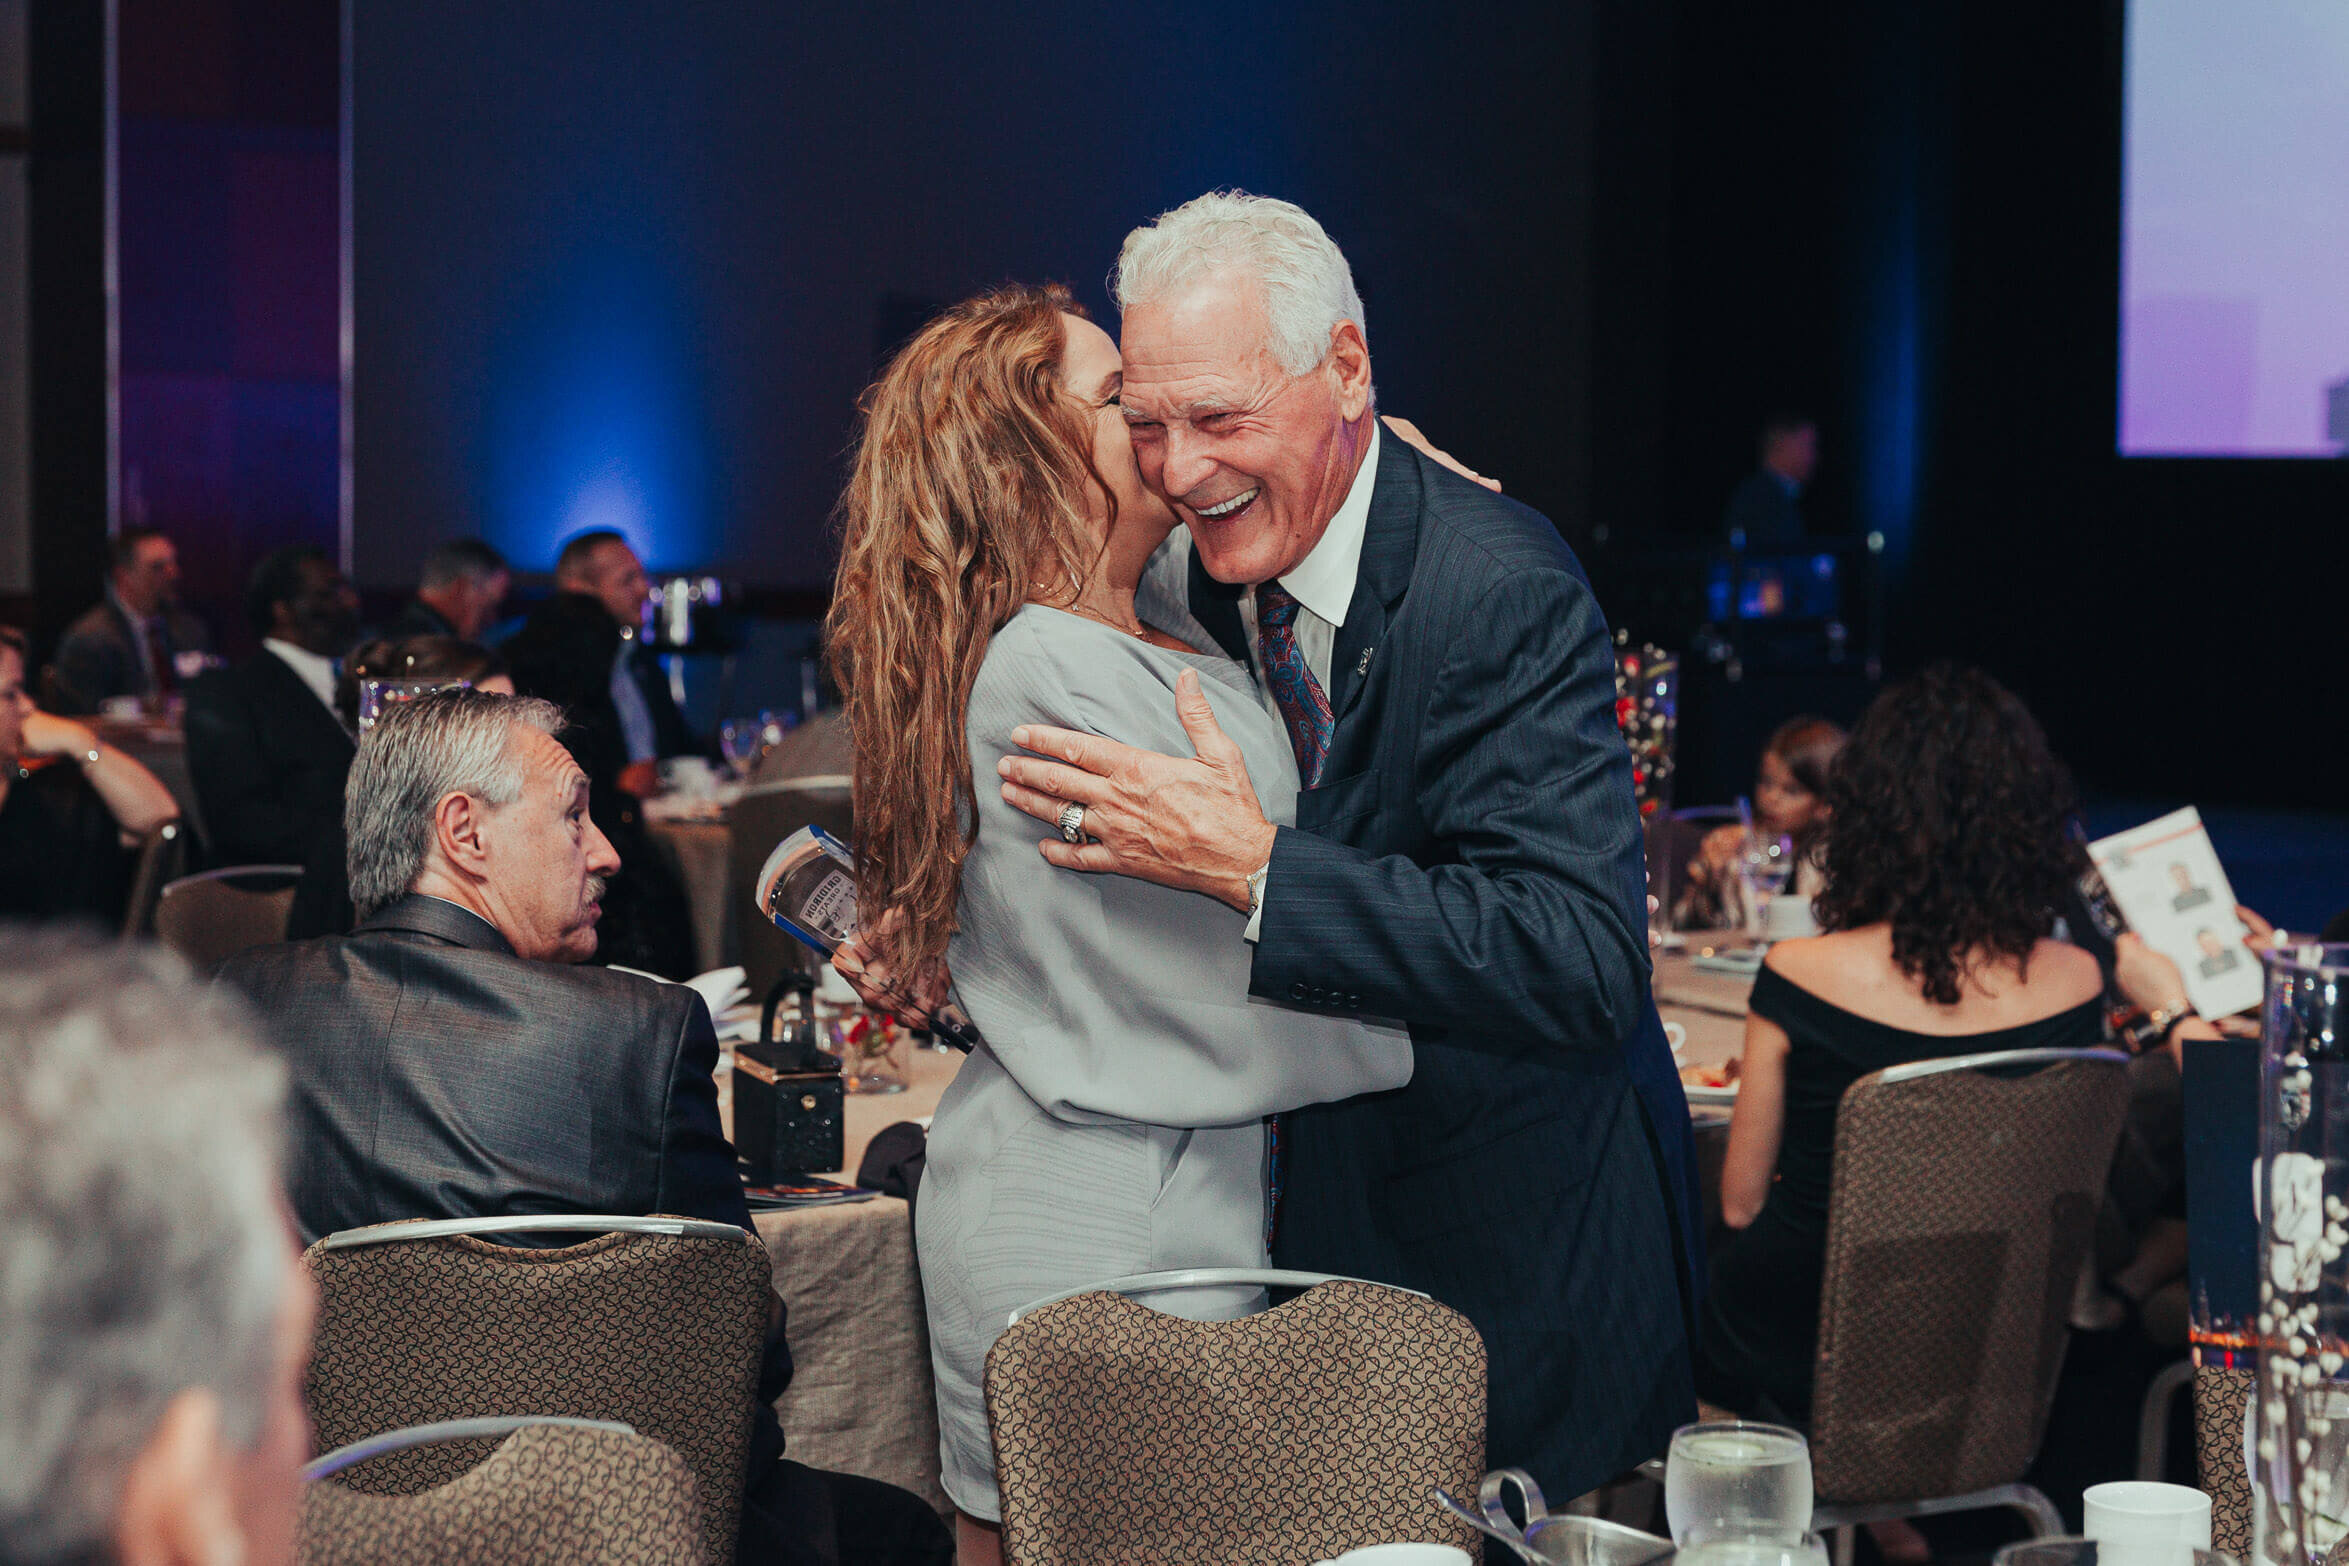 Chicago Event Photography_Gridiron Greats Assistance Fund Hall of Fame 2019_14.jpg